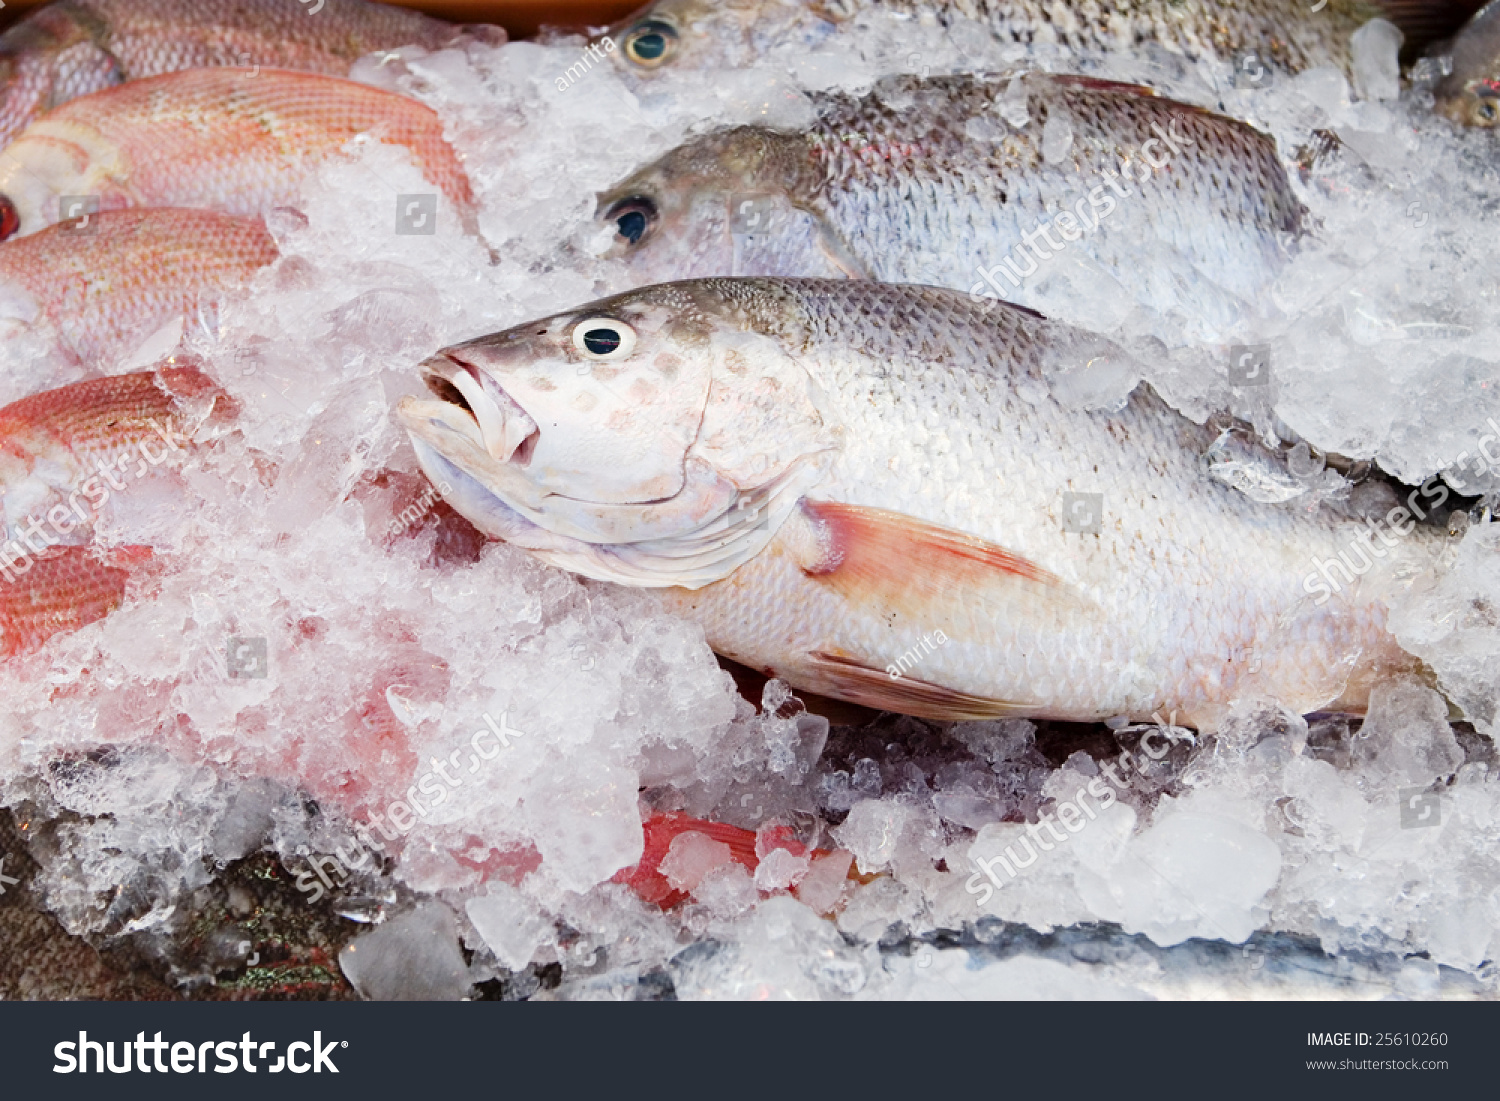 Fresh frozen fish stock photo 25610260 shutterstock for How to freeze fish